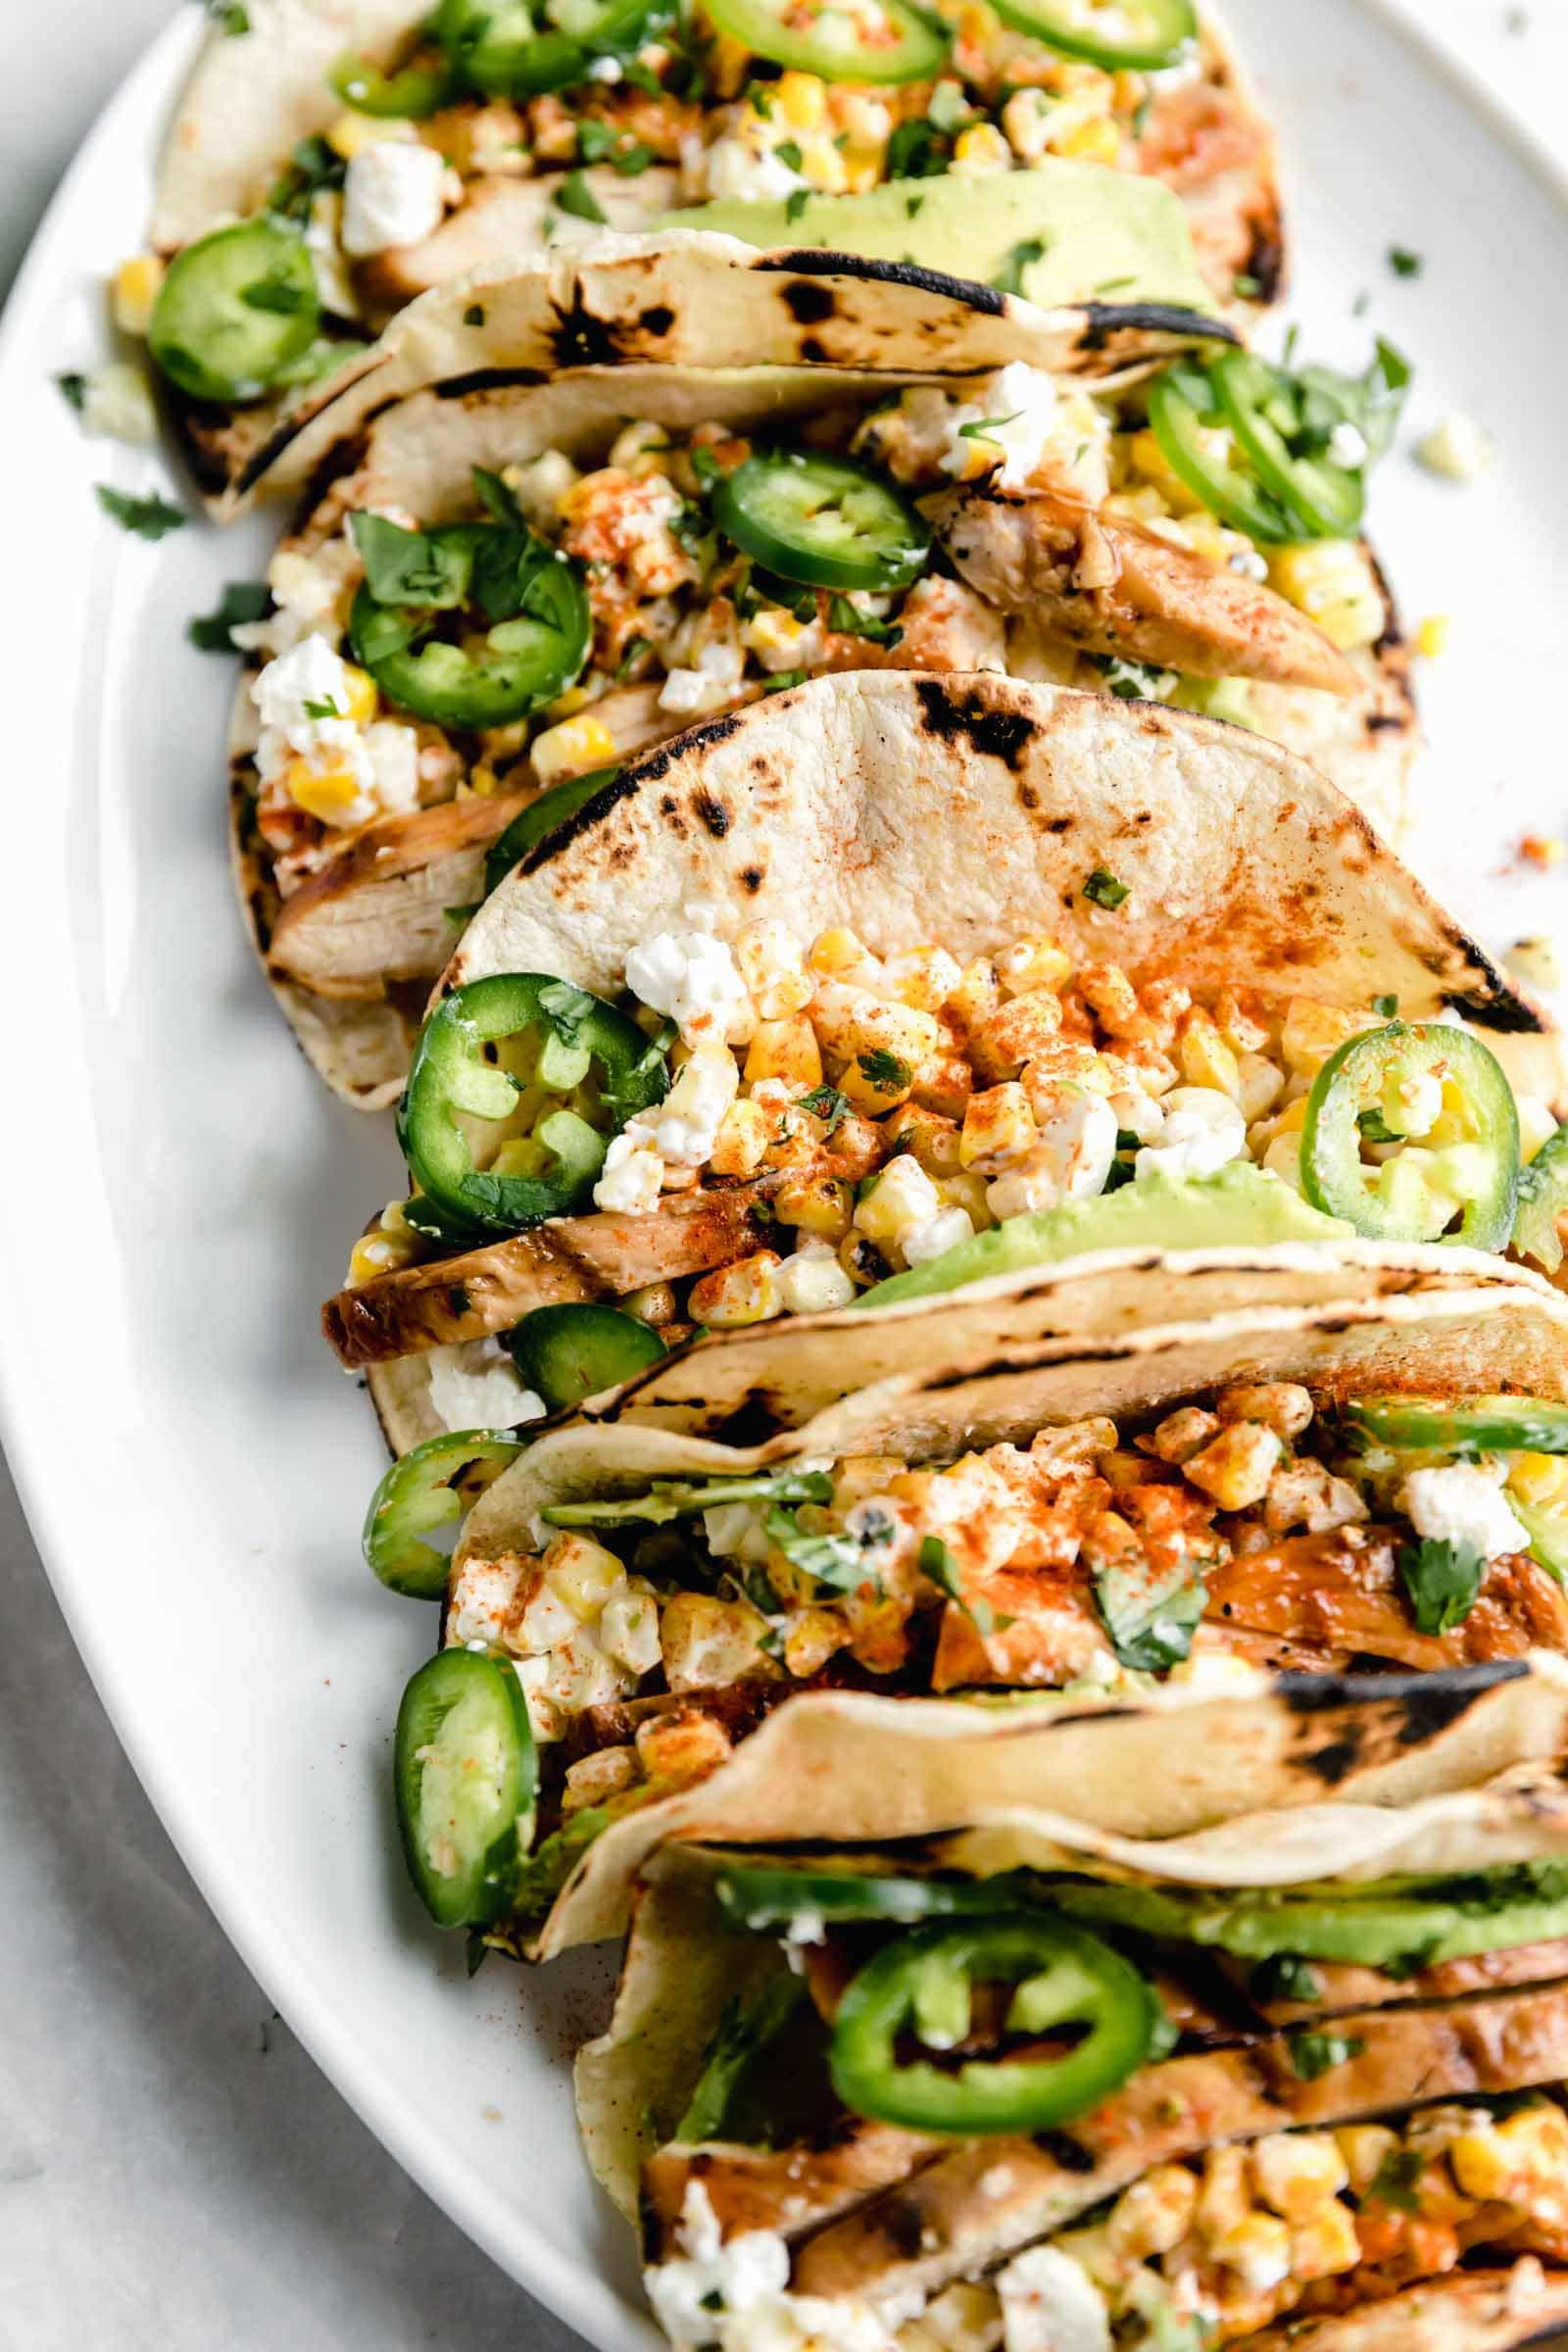 Kicking off Summer Taco Tuesdays with BBQ Chicken Mexican Street Corn tacos loaded with crema, cotija cheese, avocado, and fresh corn. Sign me up!